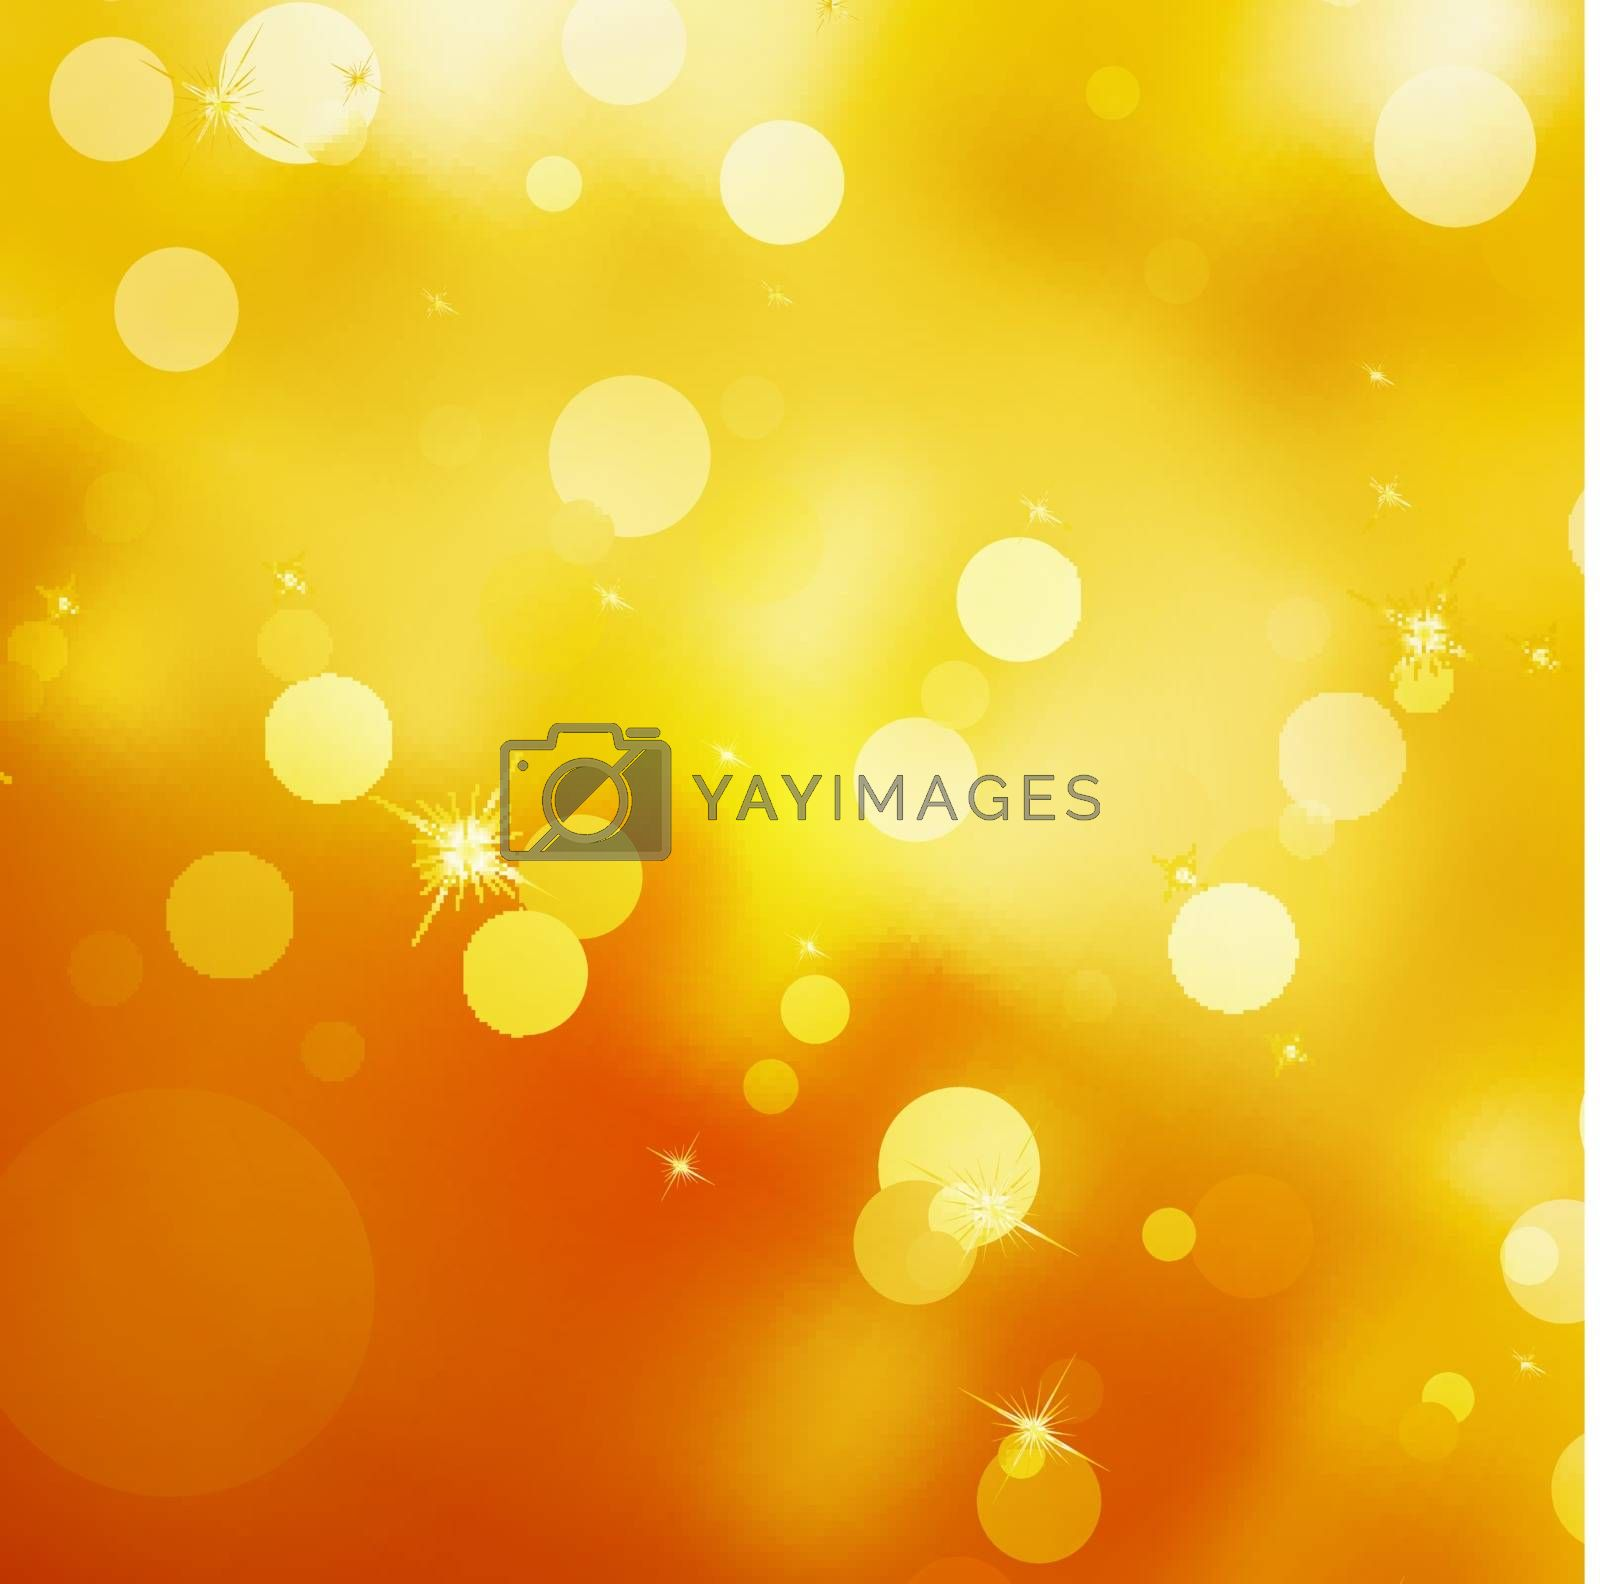 Royalty free image of Glittery gold Christmas background. EPS 10 by Petrov_Vladimir